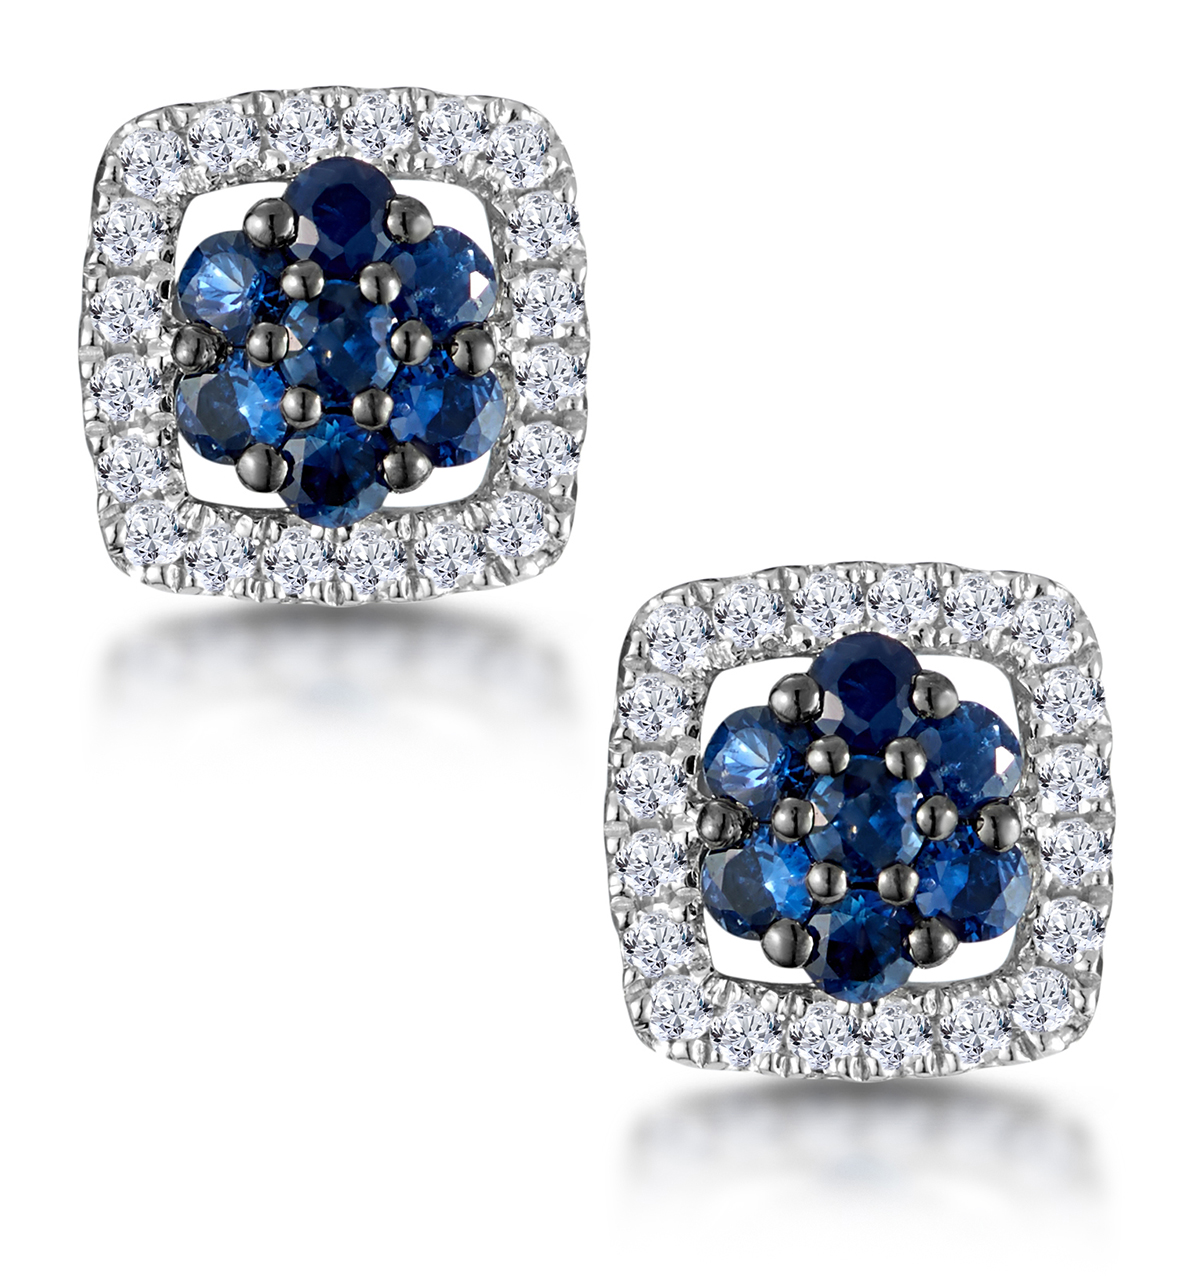 SAPPHIRE AND DIAMOND EARRINGS IN 9K WHITE GOLD - STELLATO COLLECTION